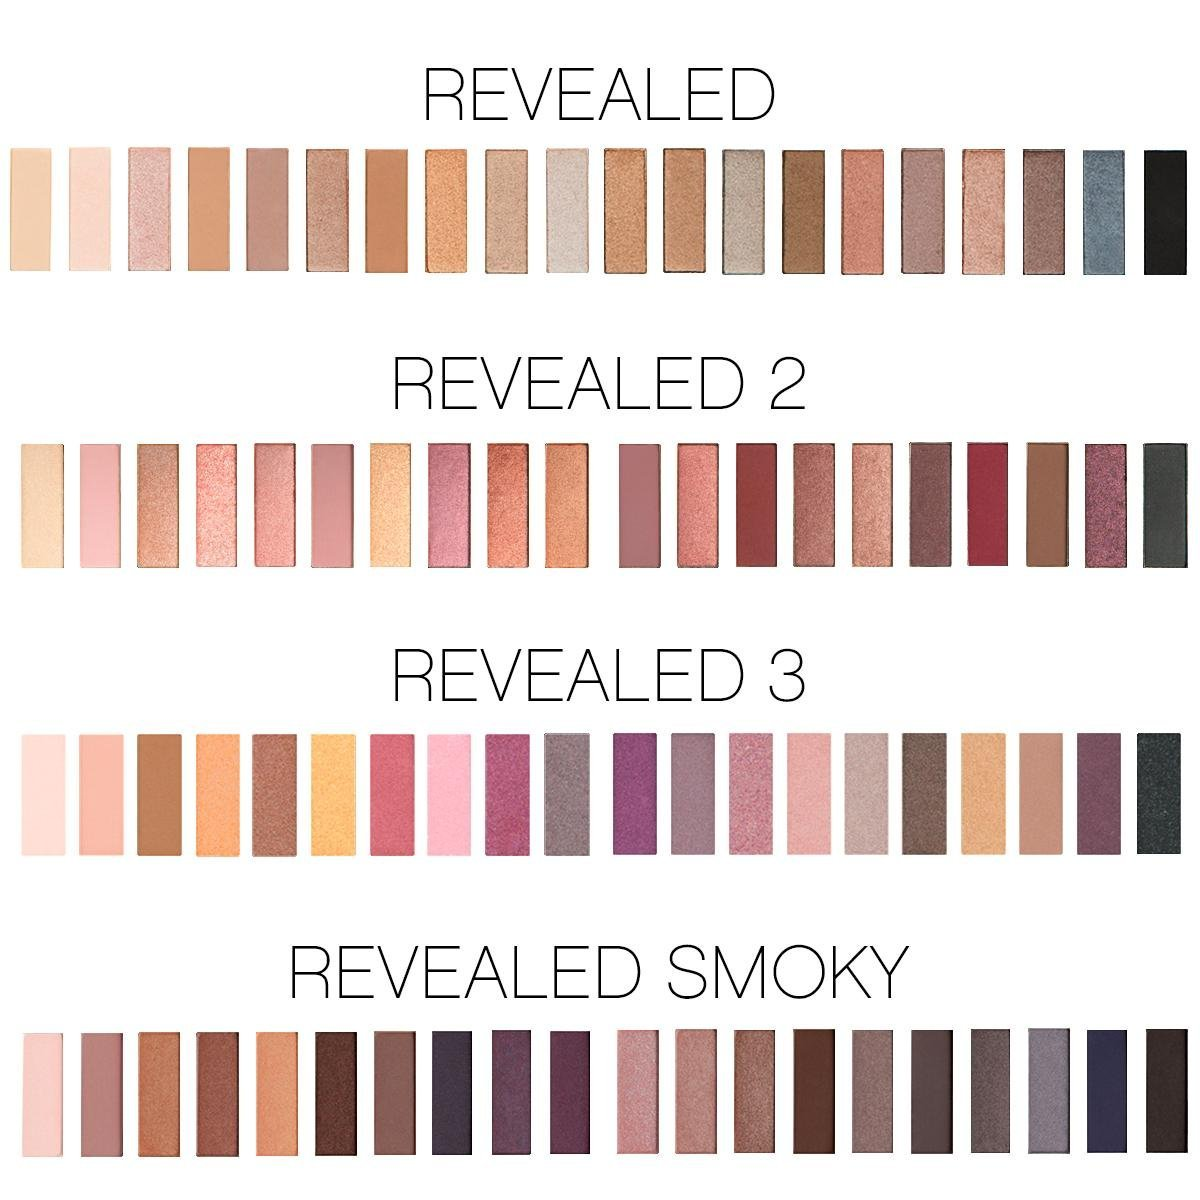 Amazon.com: Coastal Scents Revealed 2 Eye Shadow Palette (PL-037